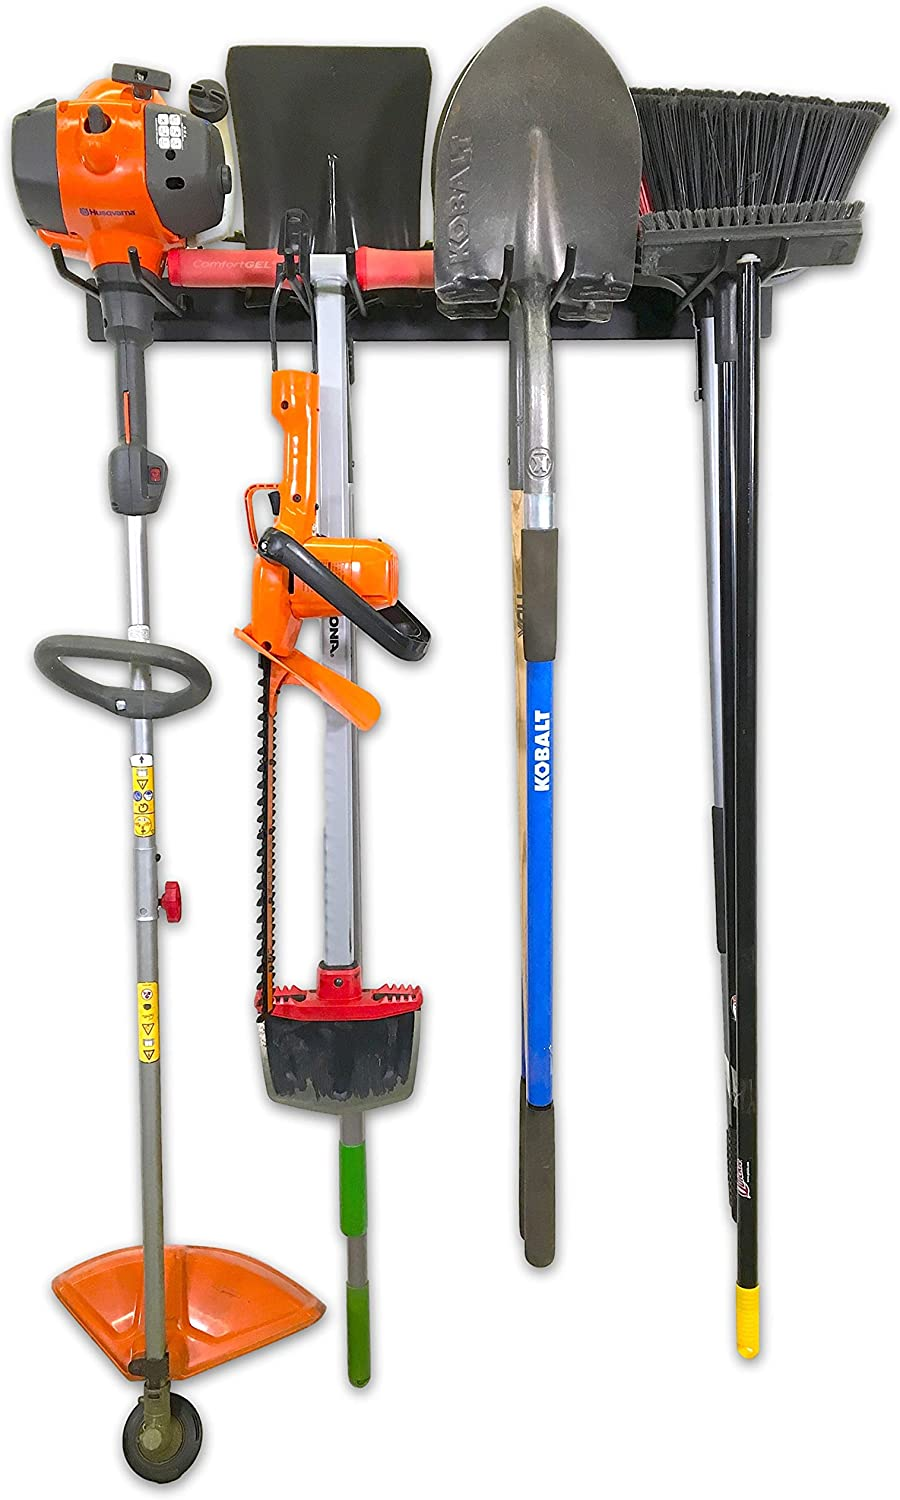 StoreYourBoard BLAT Tool Storage Rack, Garage Wall Mount Organizer, Holds Garden Tools, Shovels, Rakes, Brooms, Cords, and More